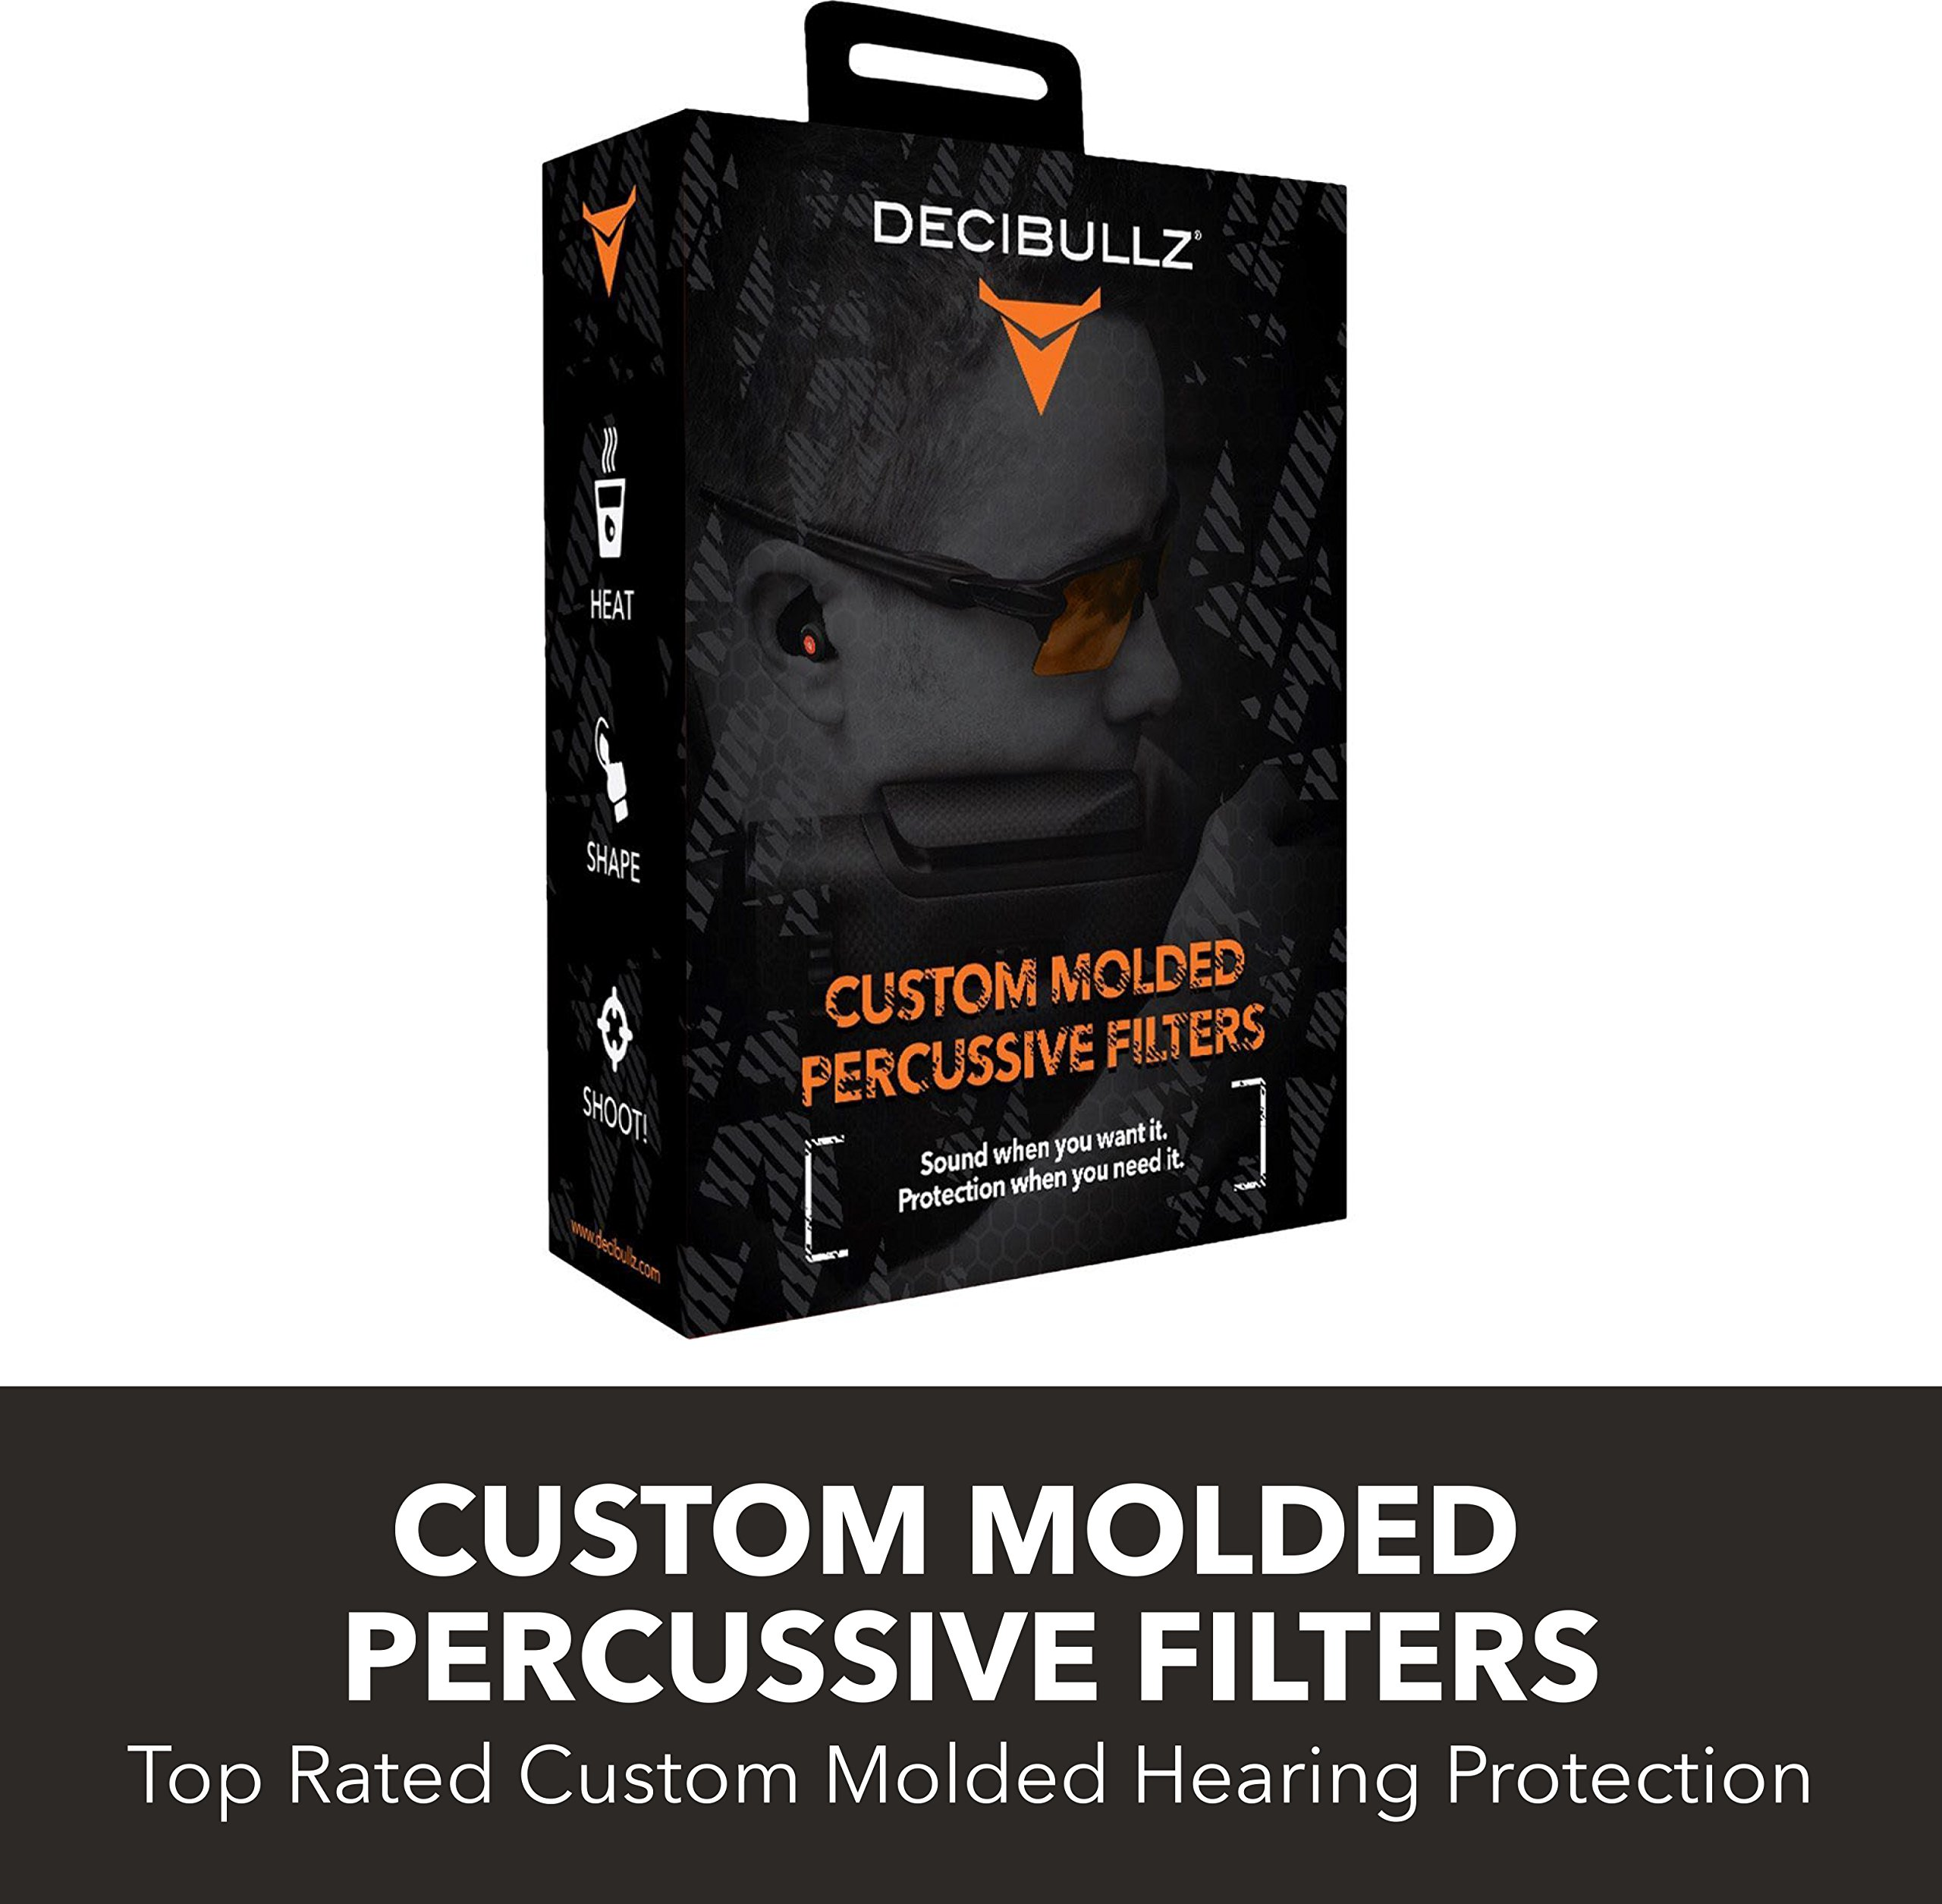 Decibullz - Custom Molded Percussive Filters, Custom Molded Hearing Protection by Decibullz